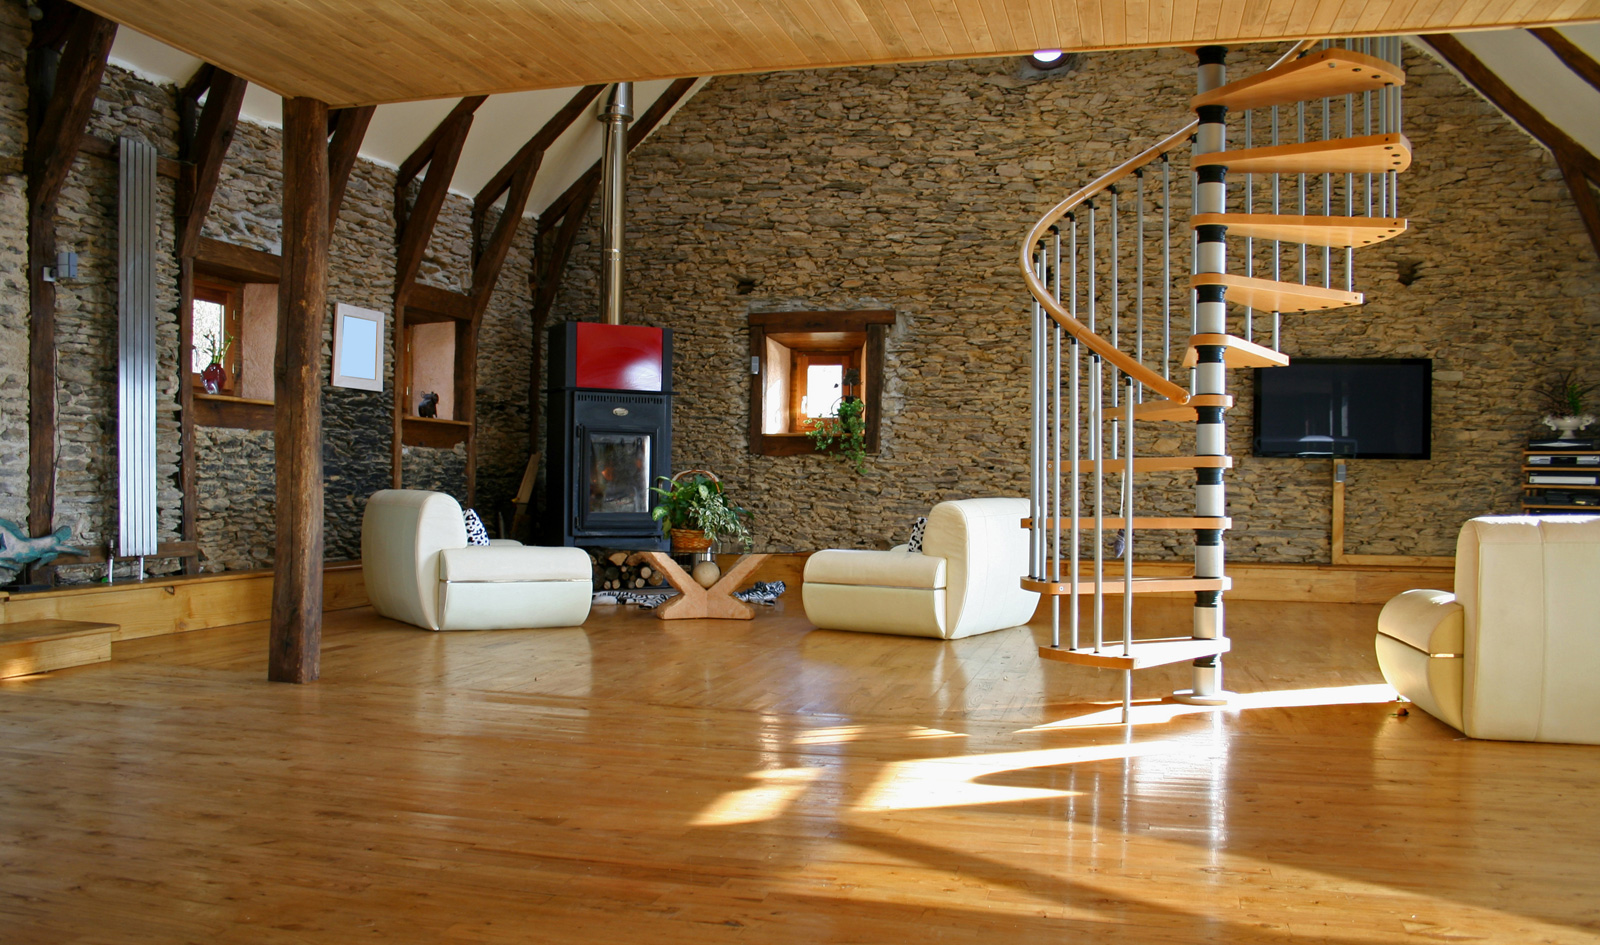 Amazing Family Room With Wood Flooring Ideas also White Sofa and Corner Fireplace